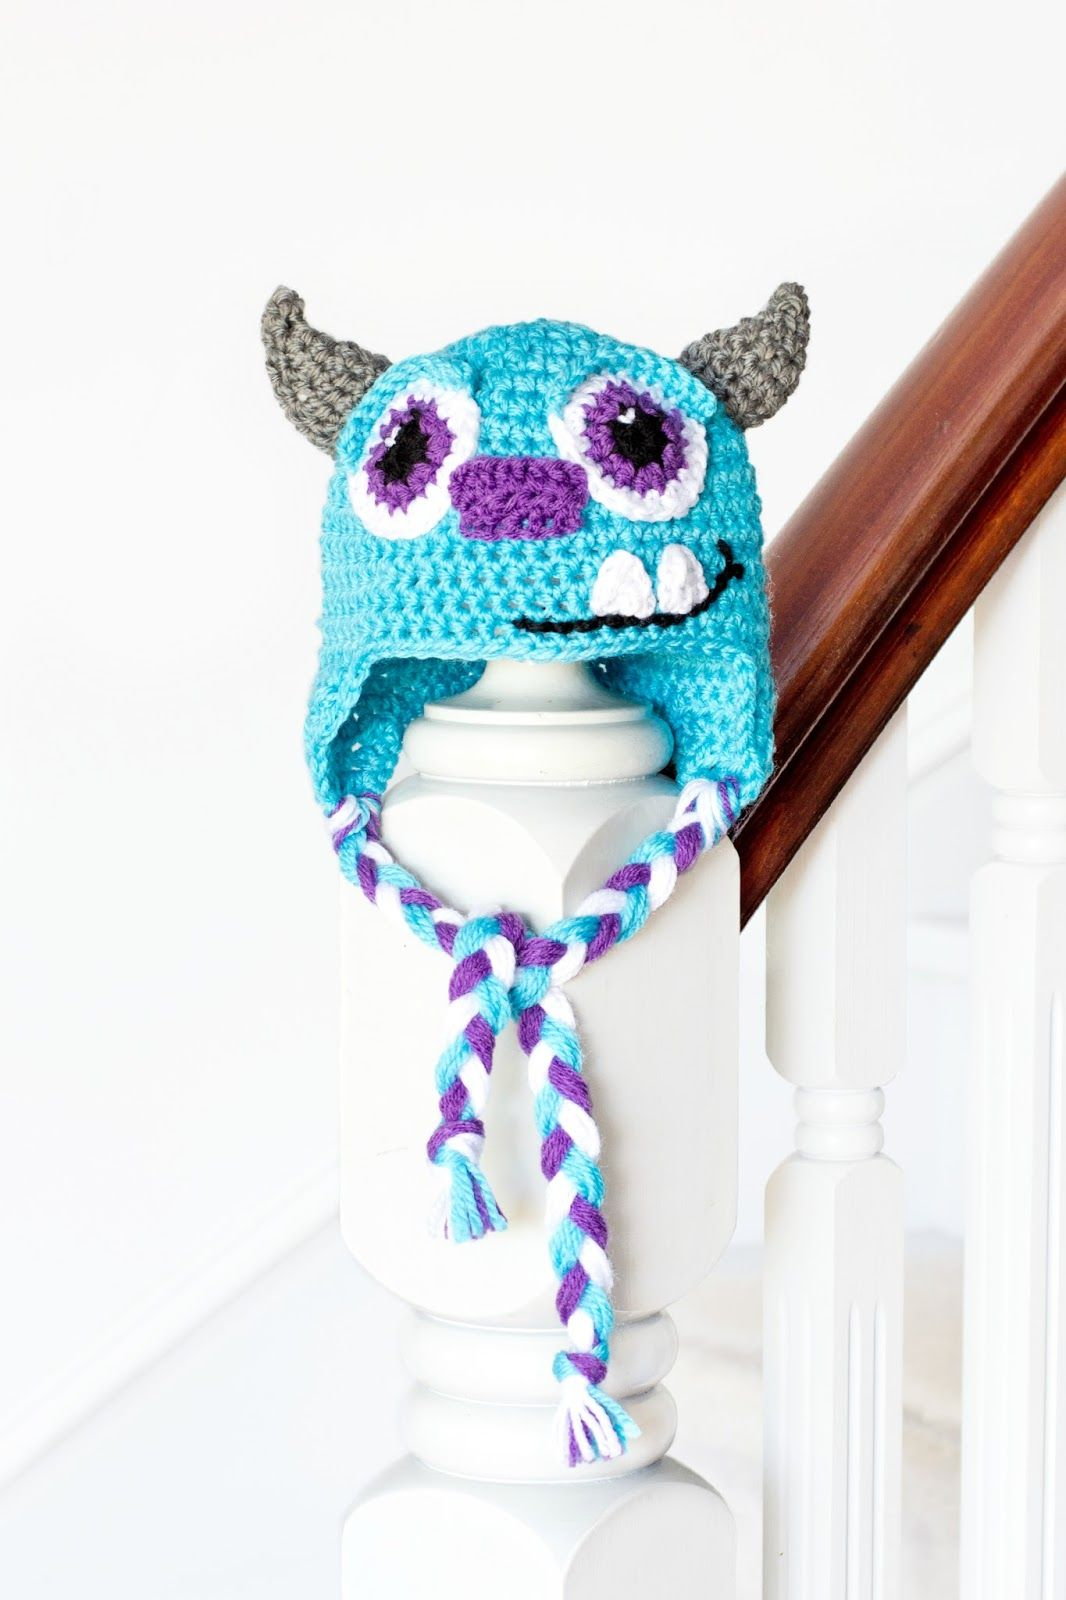 Monsters inc sulley inspired baby hat crochet pattern hopeful monsters inc sulley inspired baby hat crochet pattern bankloansurffo Gallery